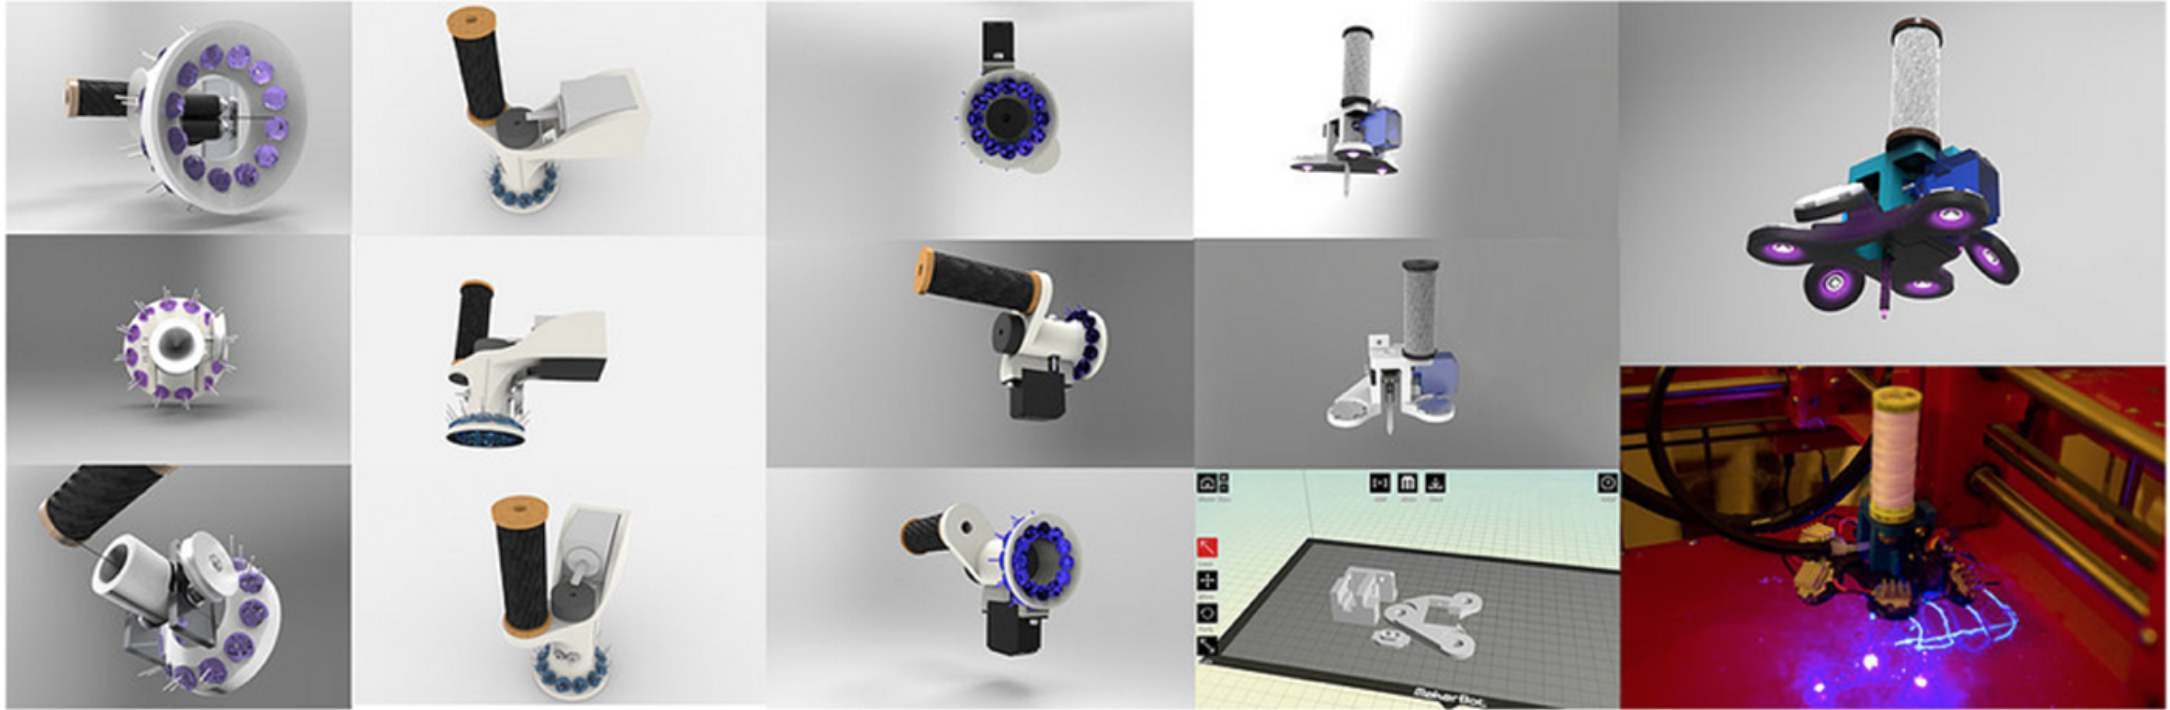 Extruder design and iterations